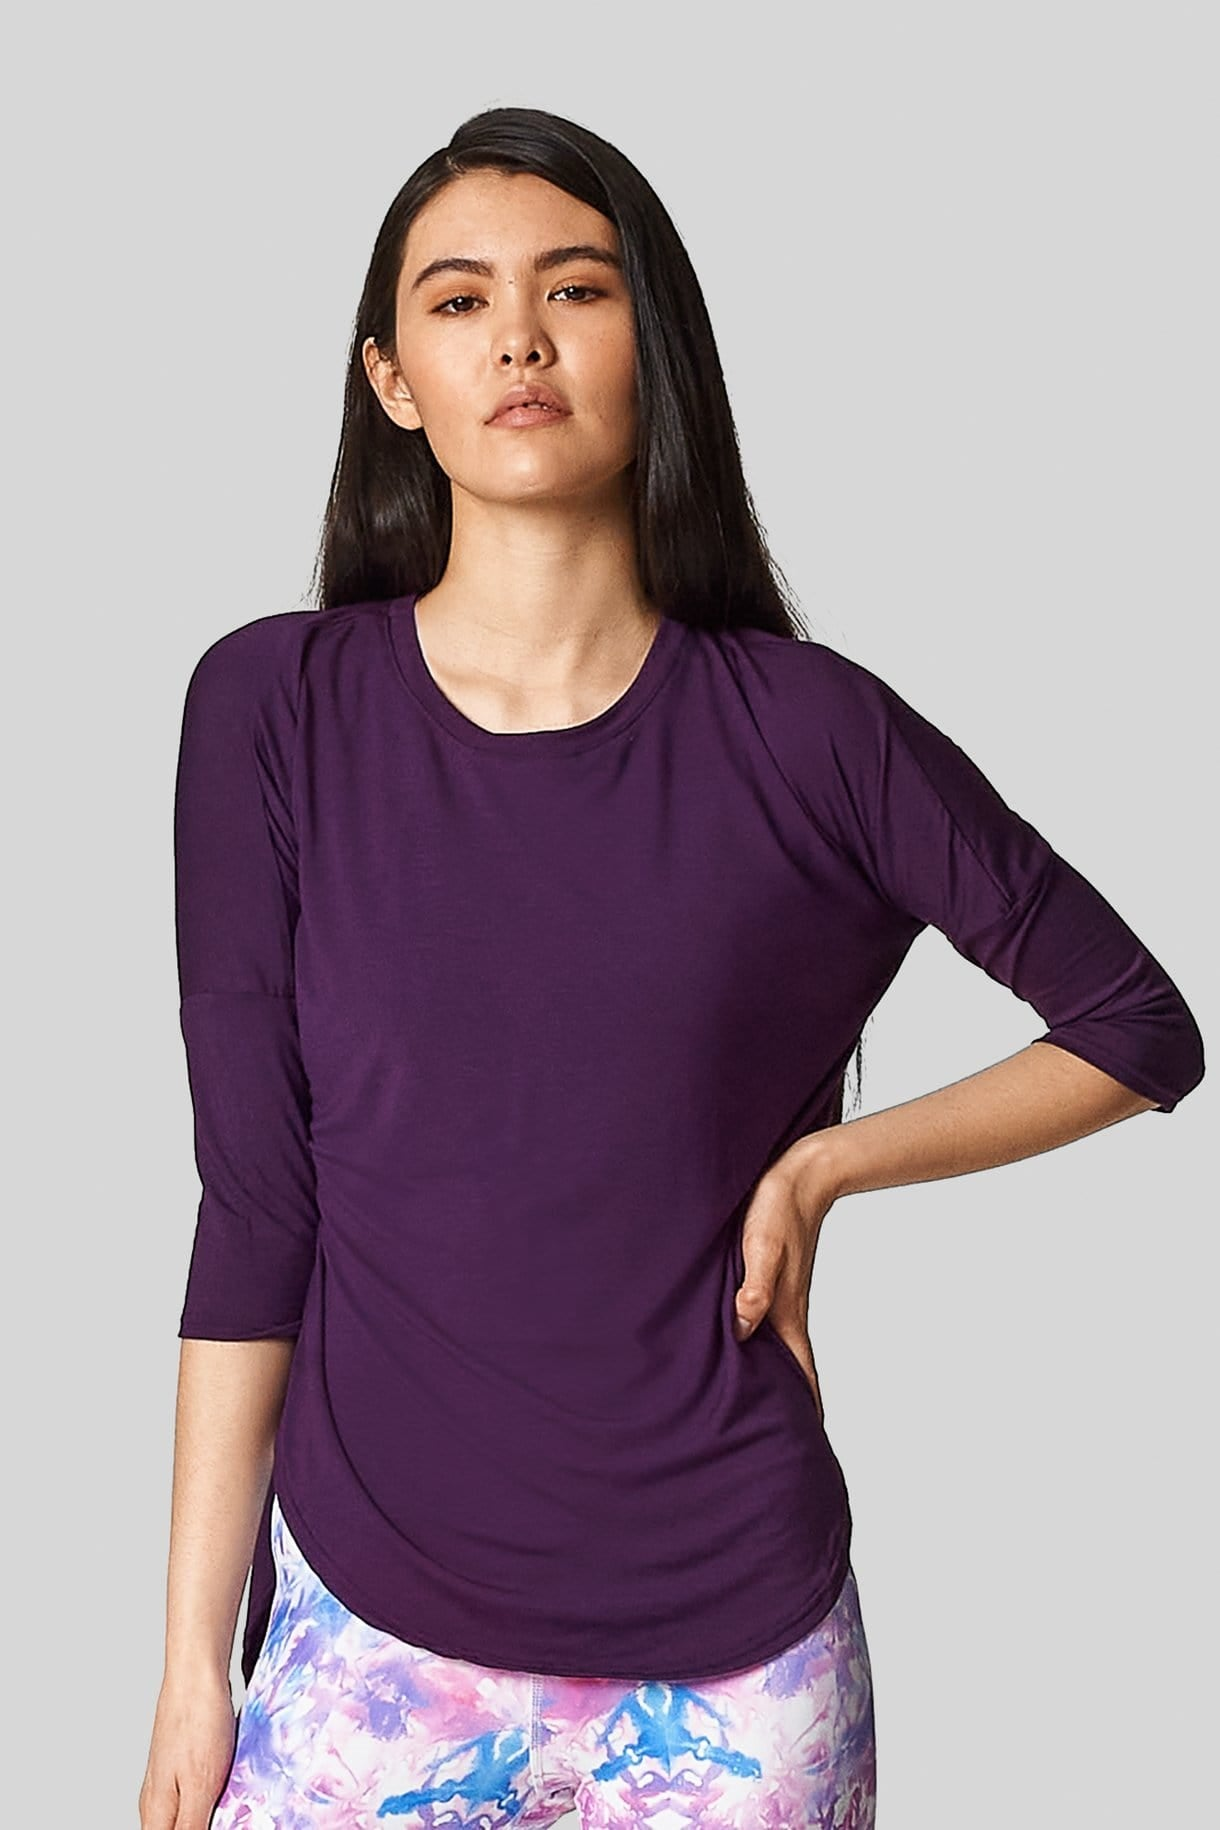 An asian female is wearing a purple t-shirt with 3/4 length sleeves.